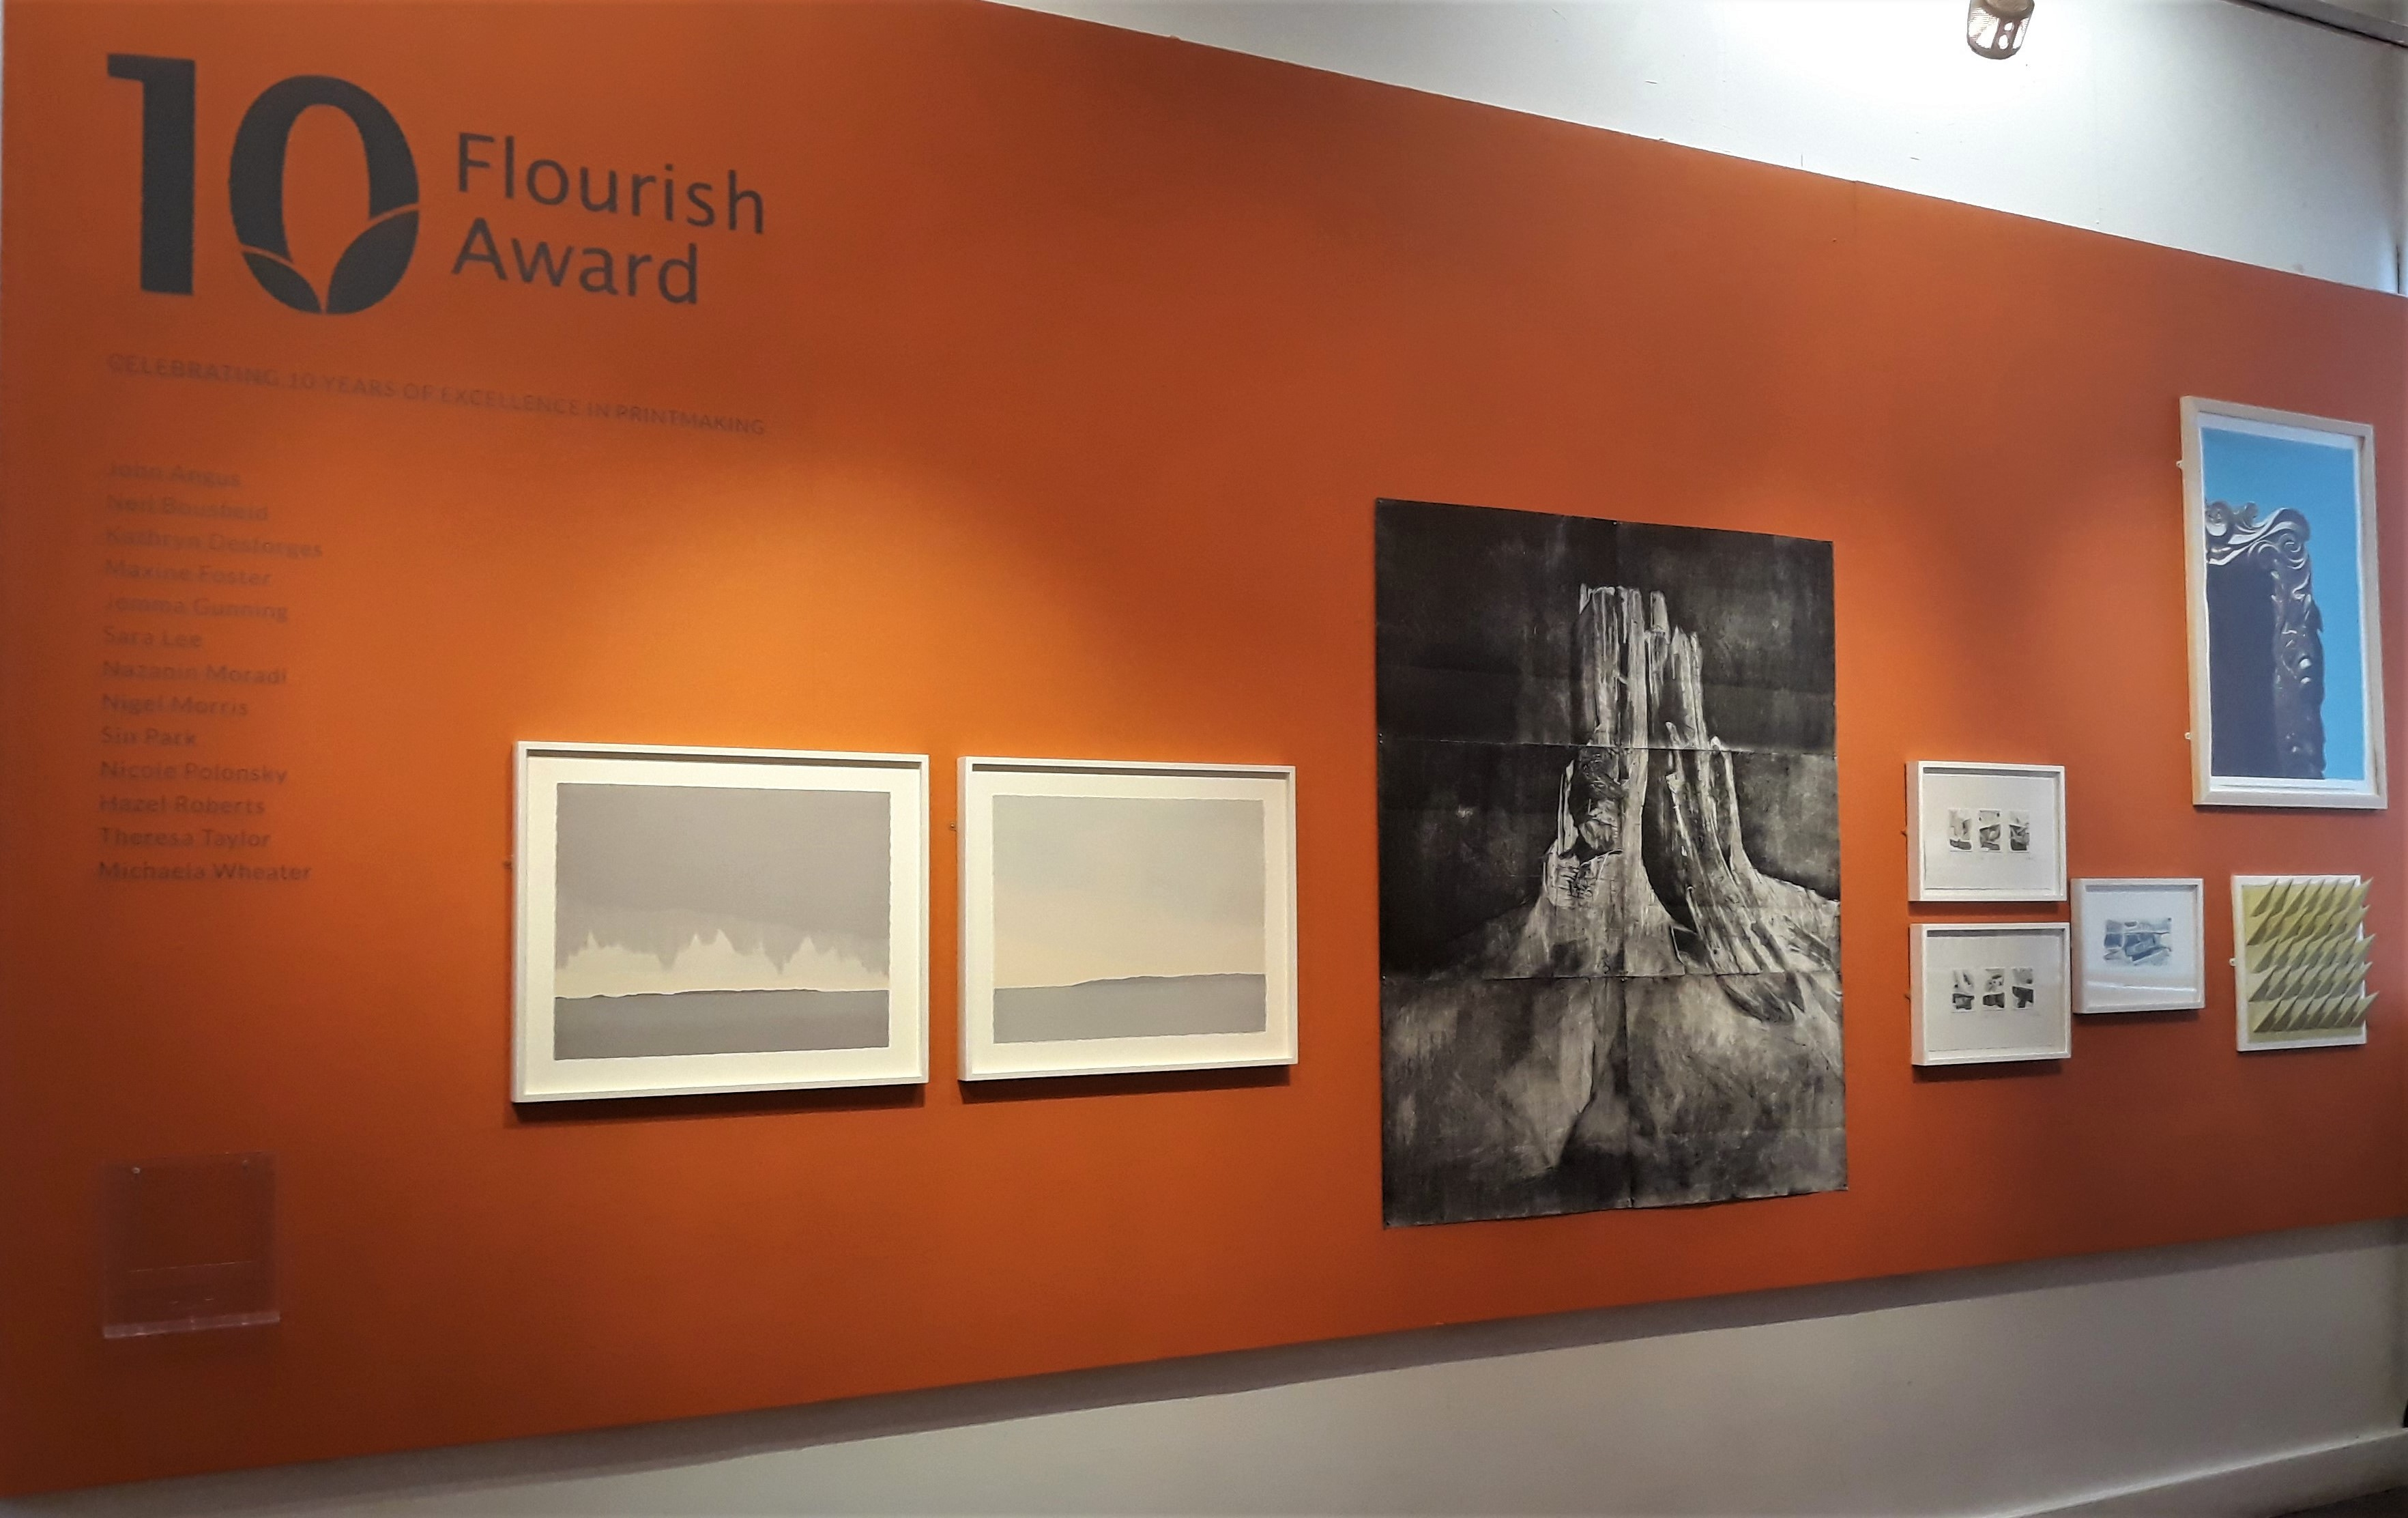 Flourish Award - Call out to artists